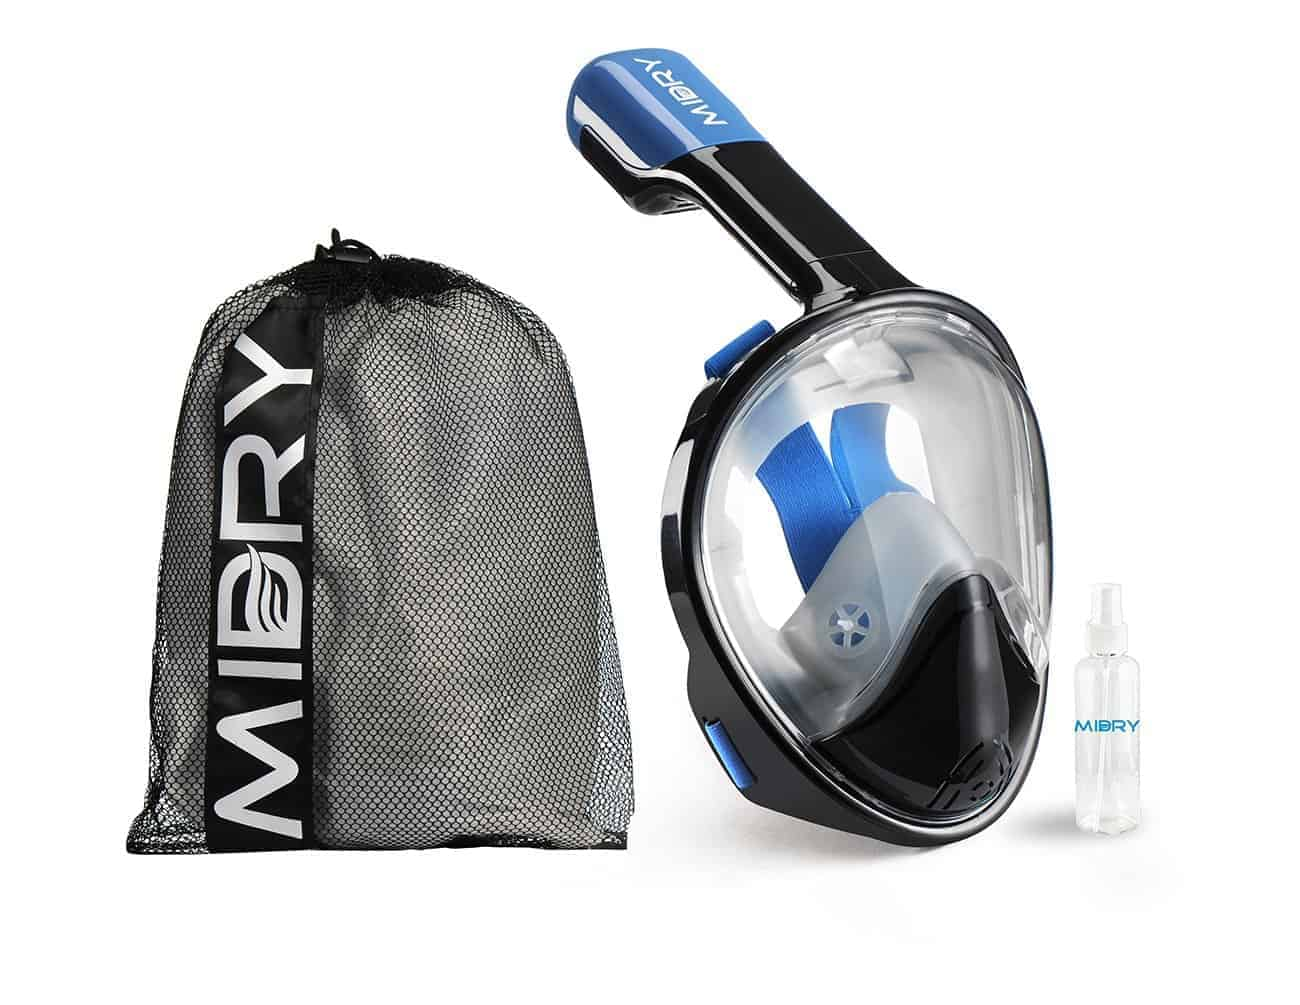 Midry Pro Snorkelling Starter Pack